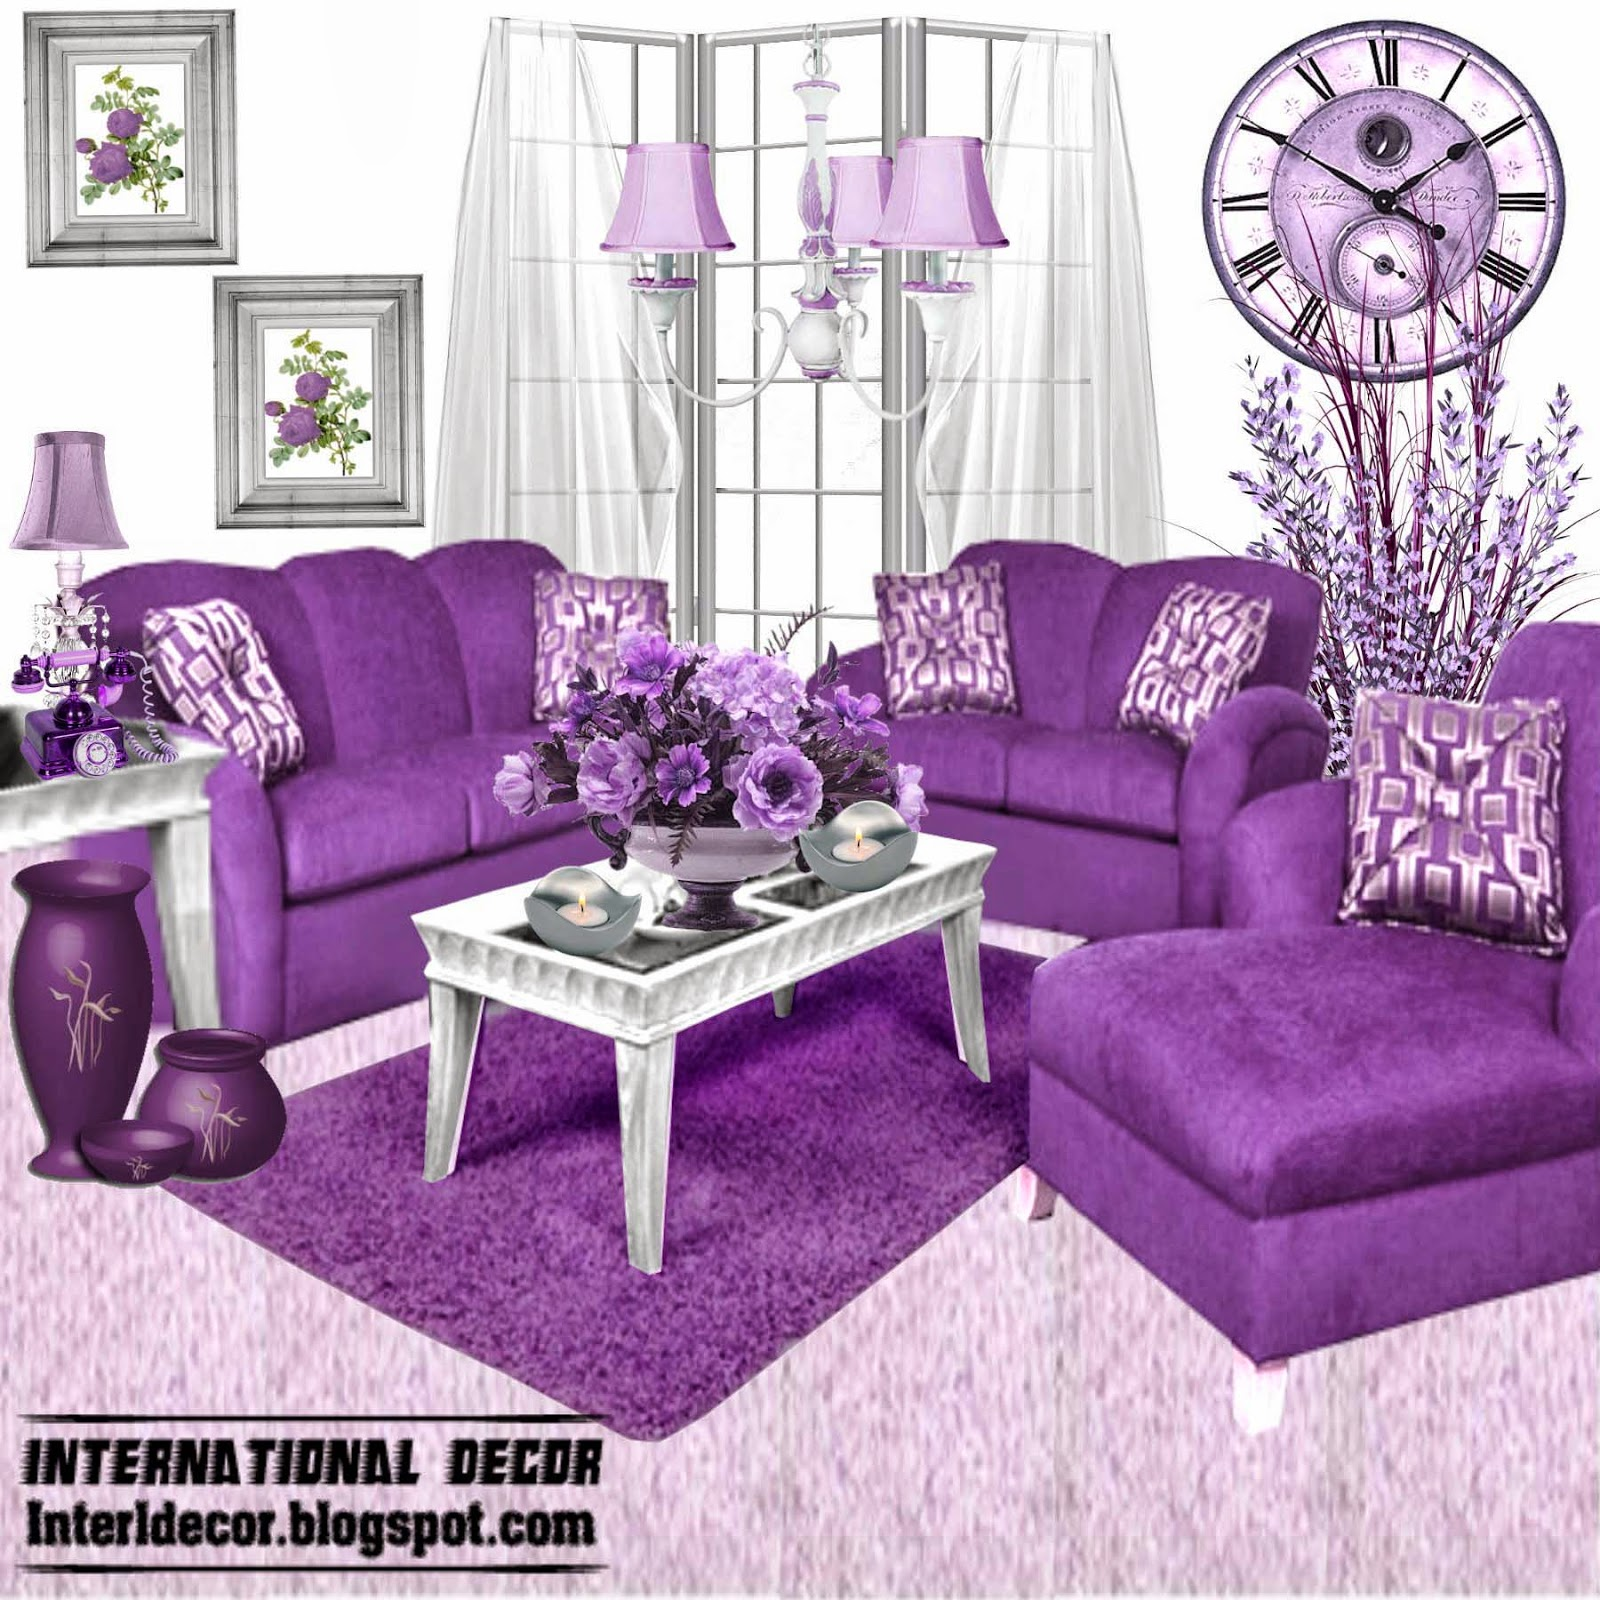 Purple furniture for the home pinterest purple Living room sofa set